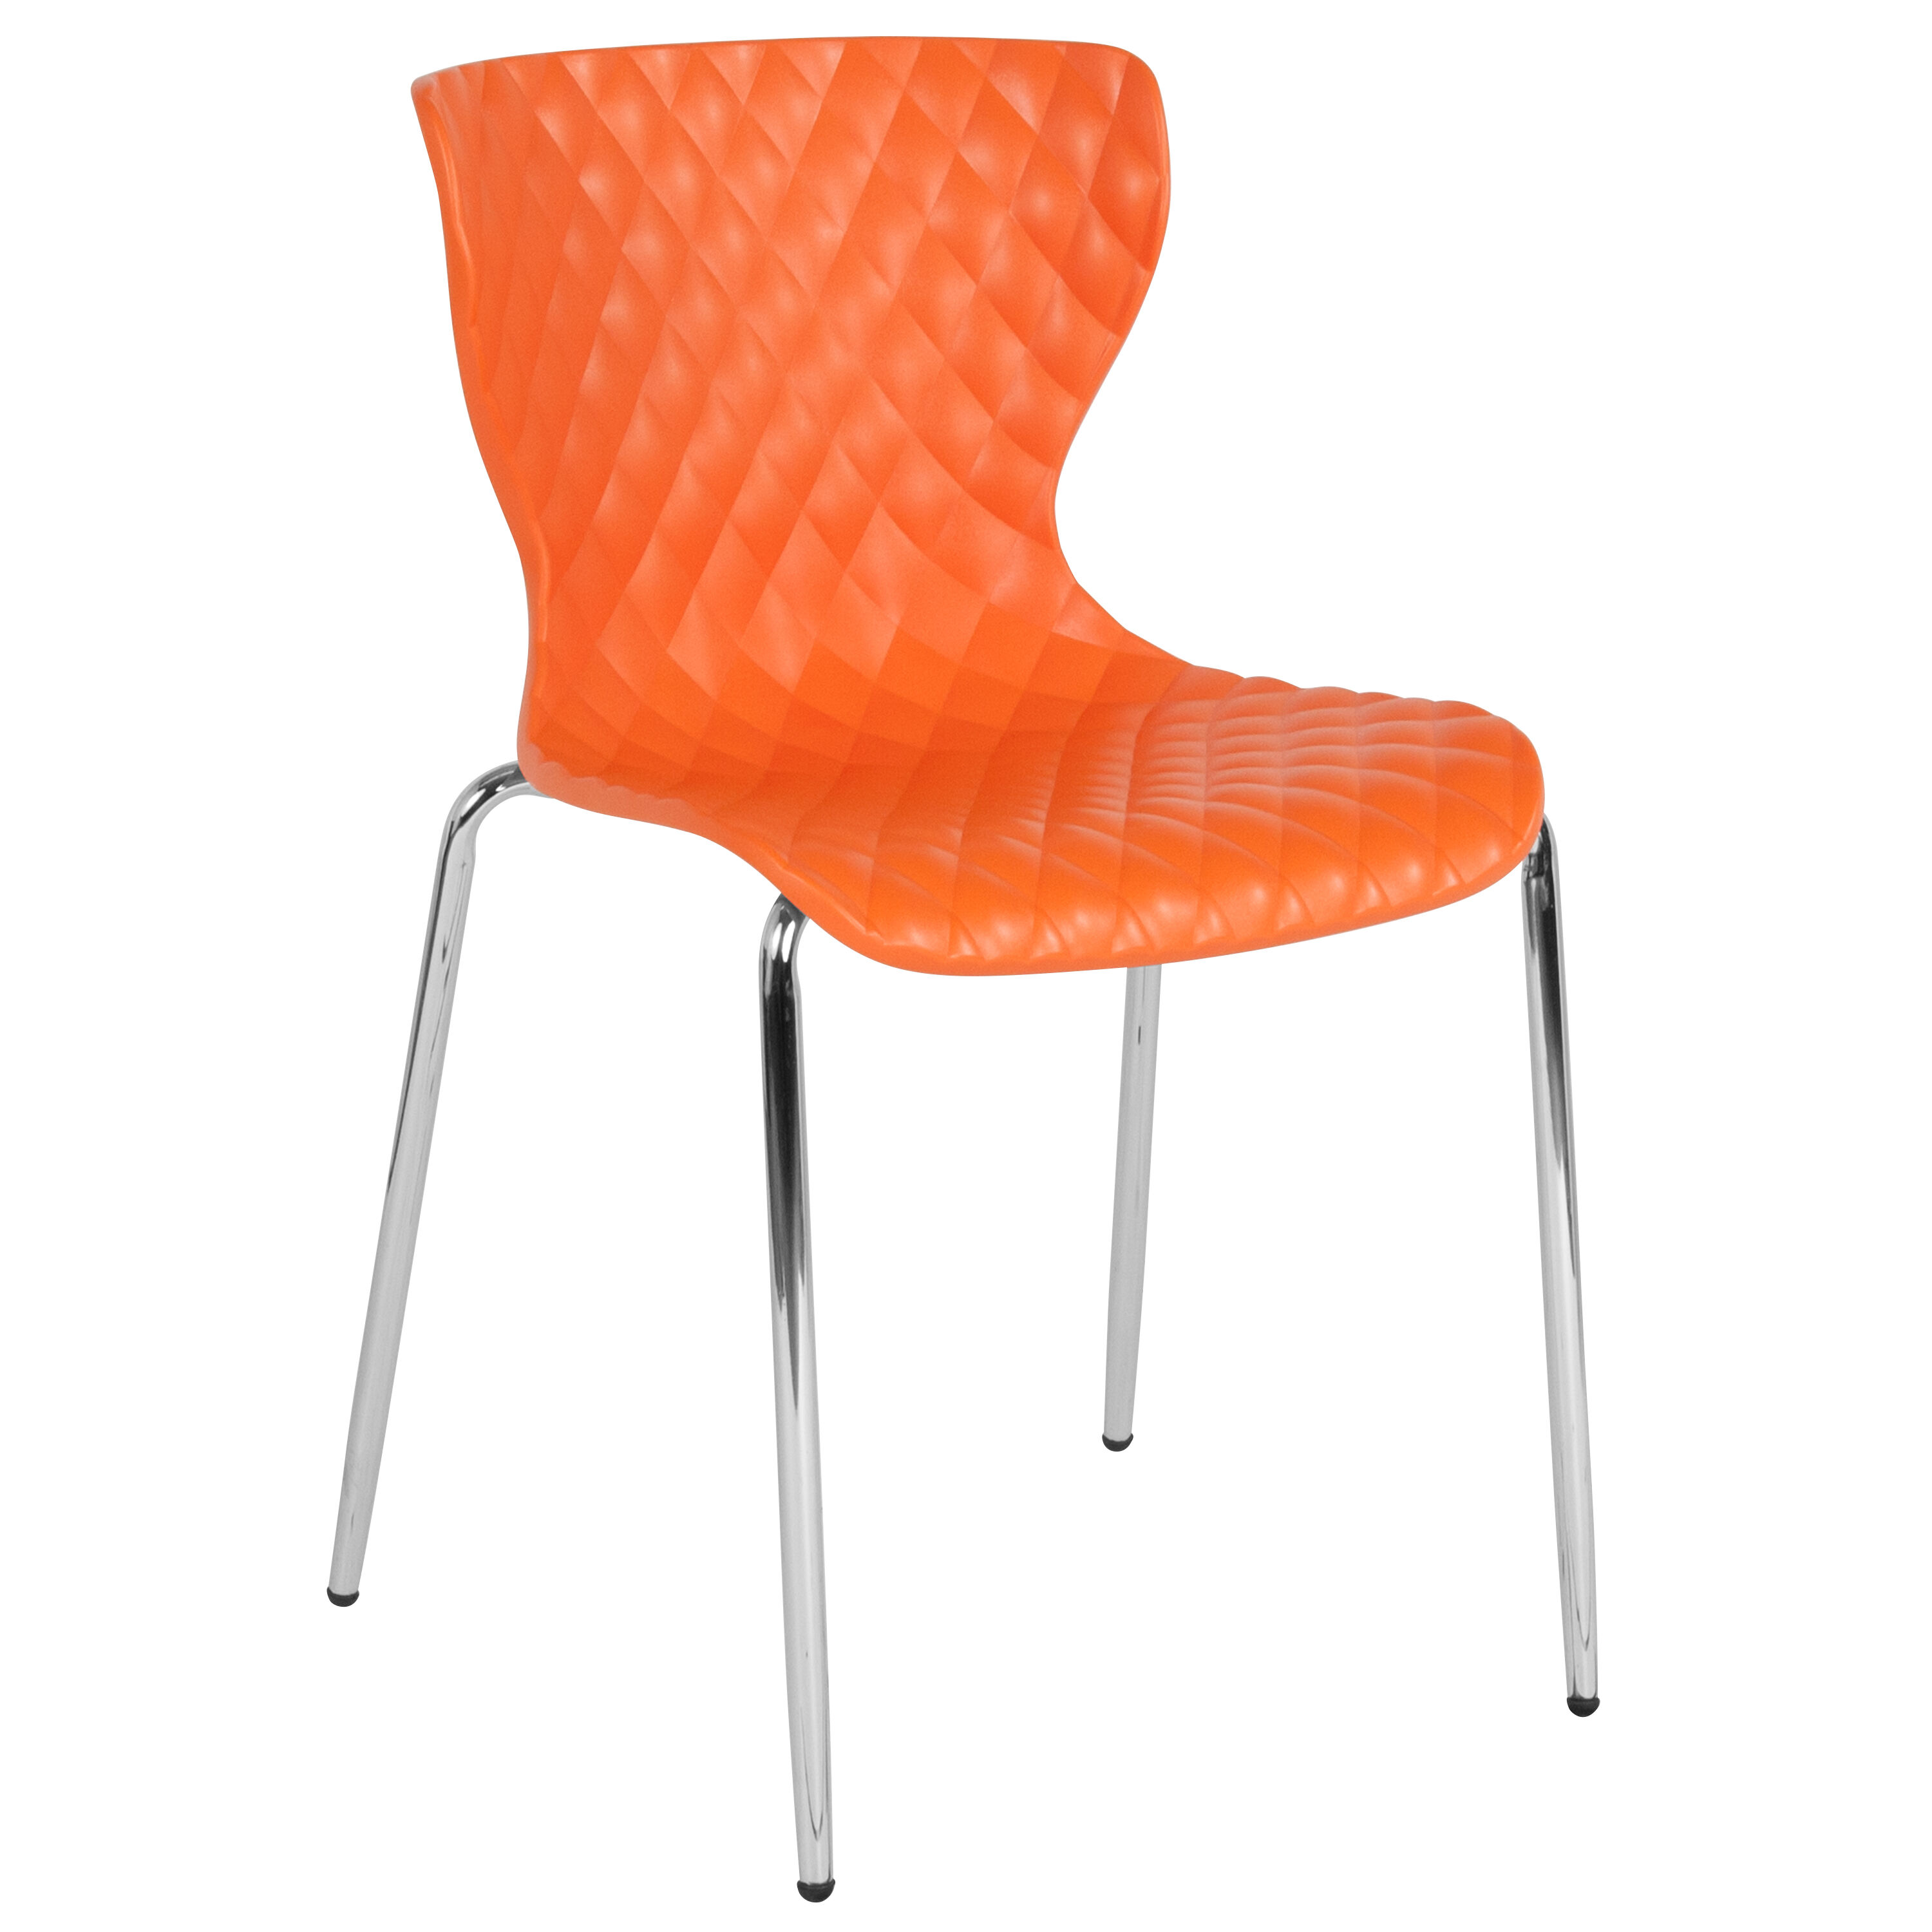 Incroyable Our Lowell Contemporary Design Orange Plastic Stack Chair Is On Sale Now.